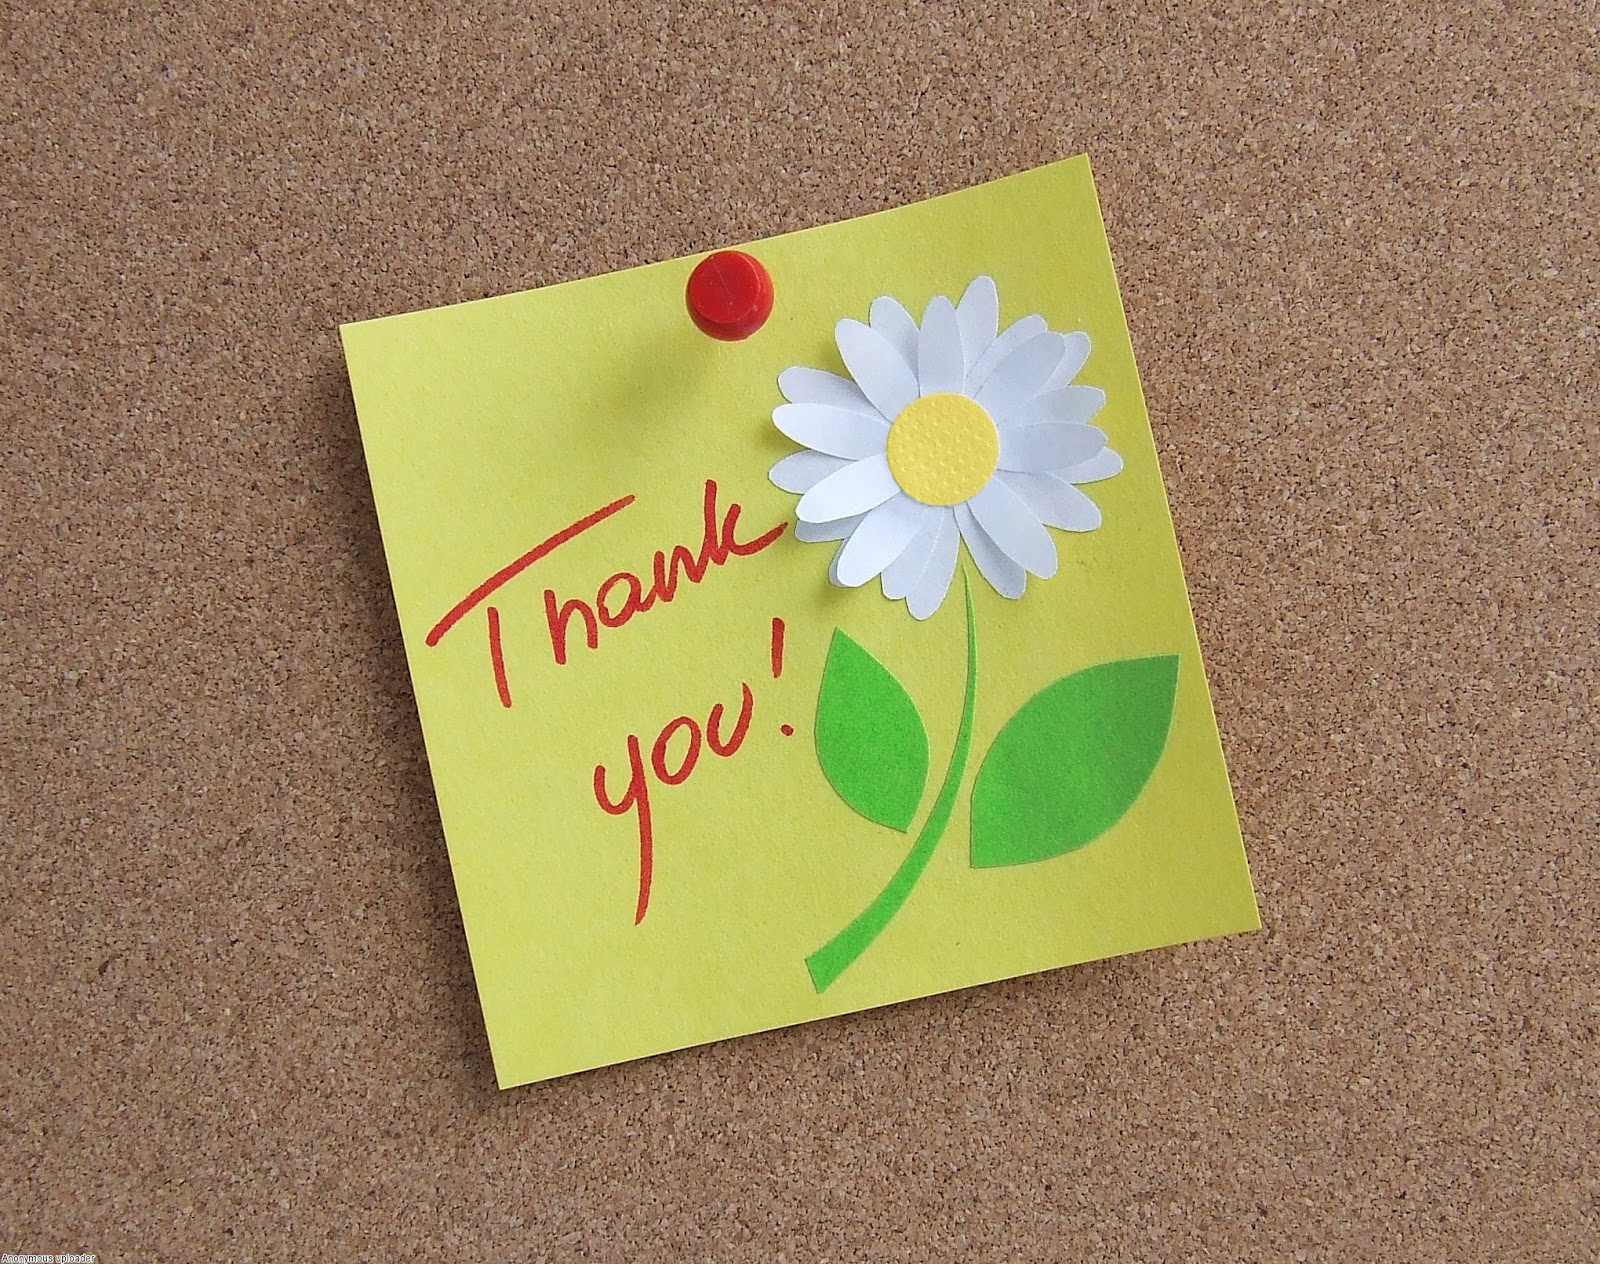 Pinned Thank You Pictures